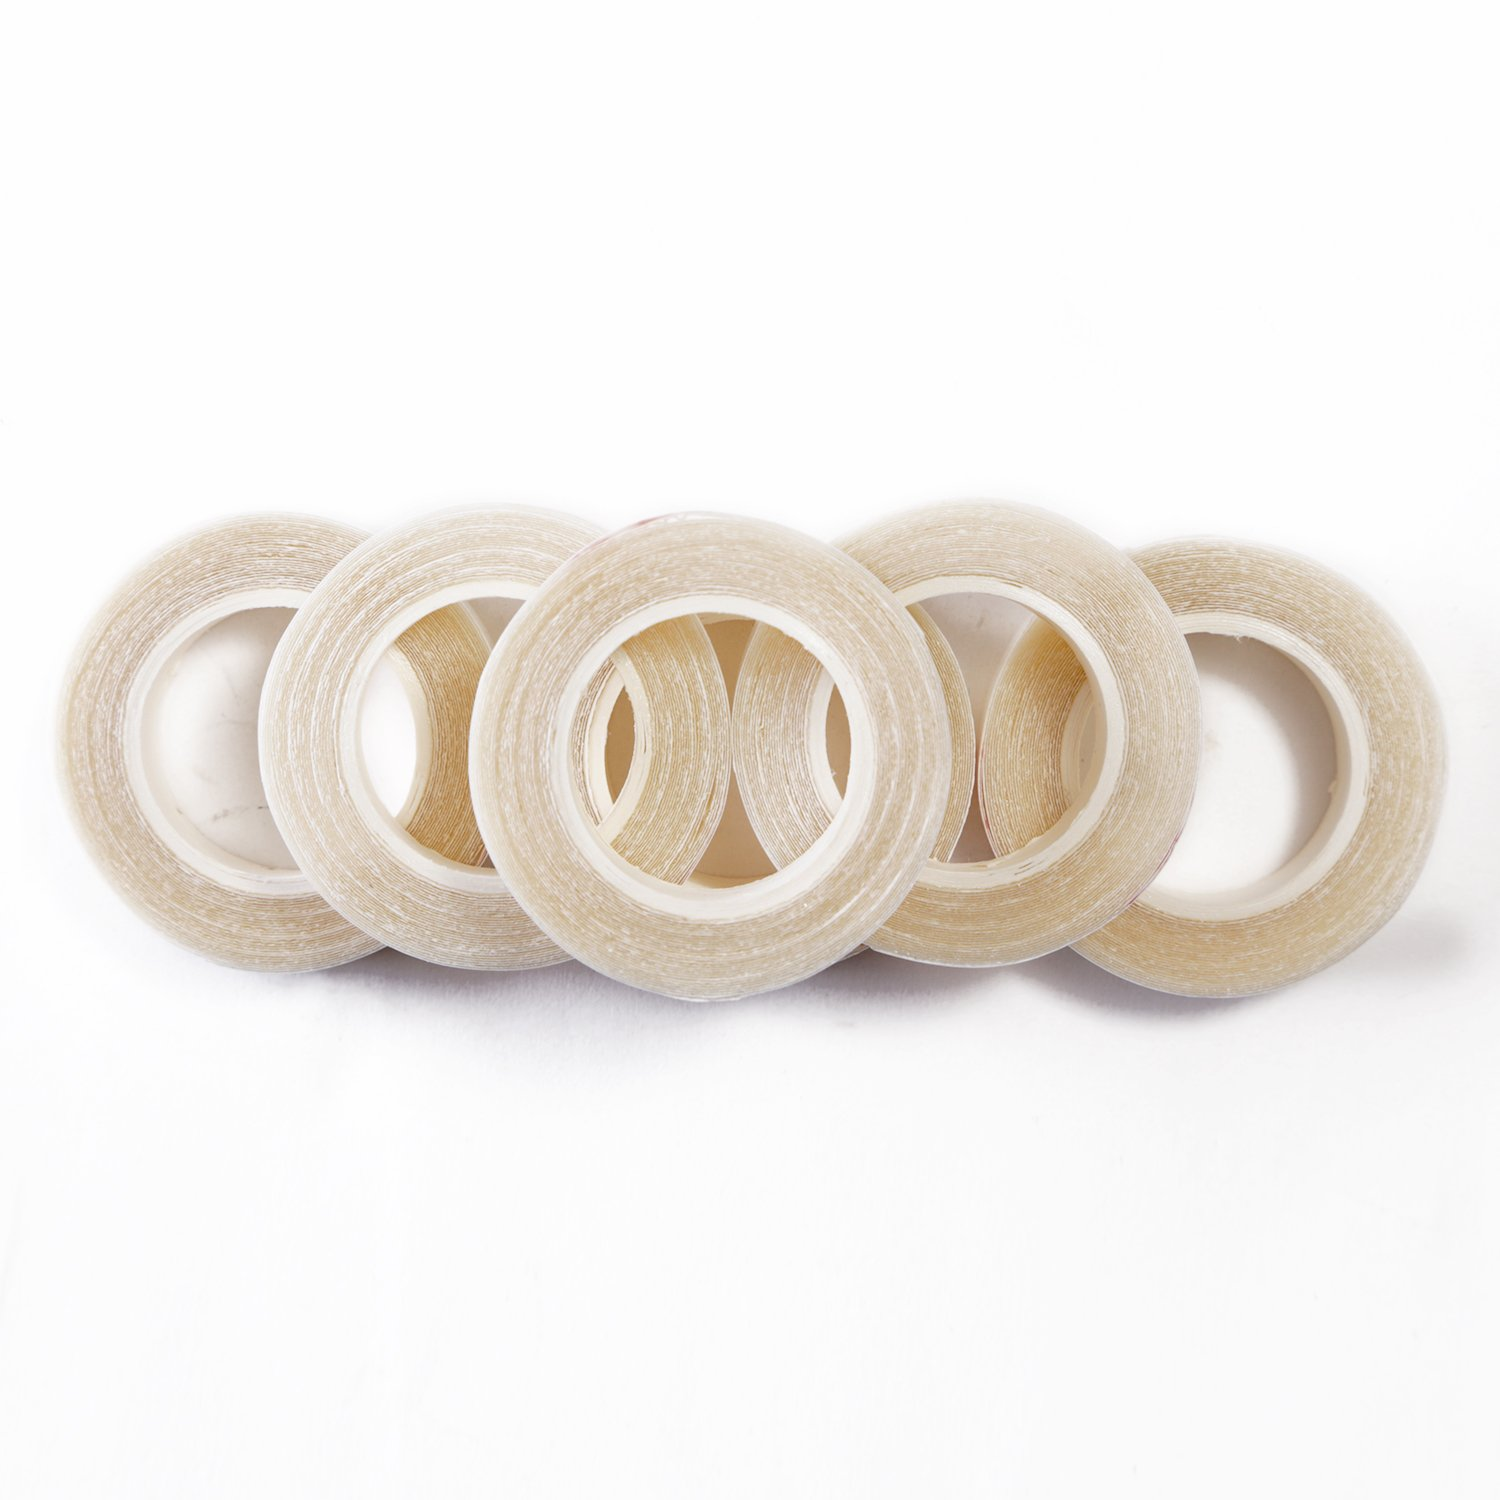 3Yard Strong Double Sided Adhesive Roll Tape for Skin Weft & Hair Extensions Hairpiece Toupee 2pcs/Set ZHUHAI AIYUCHEN COMPANY CO. LTD